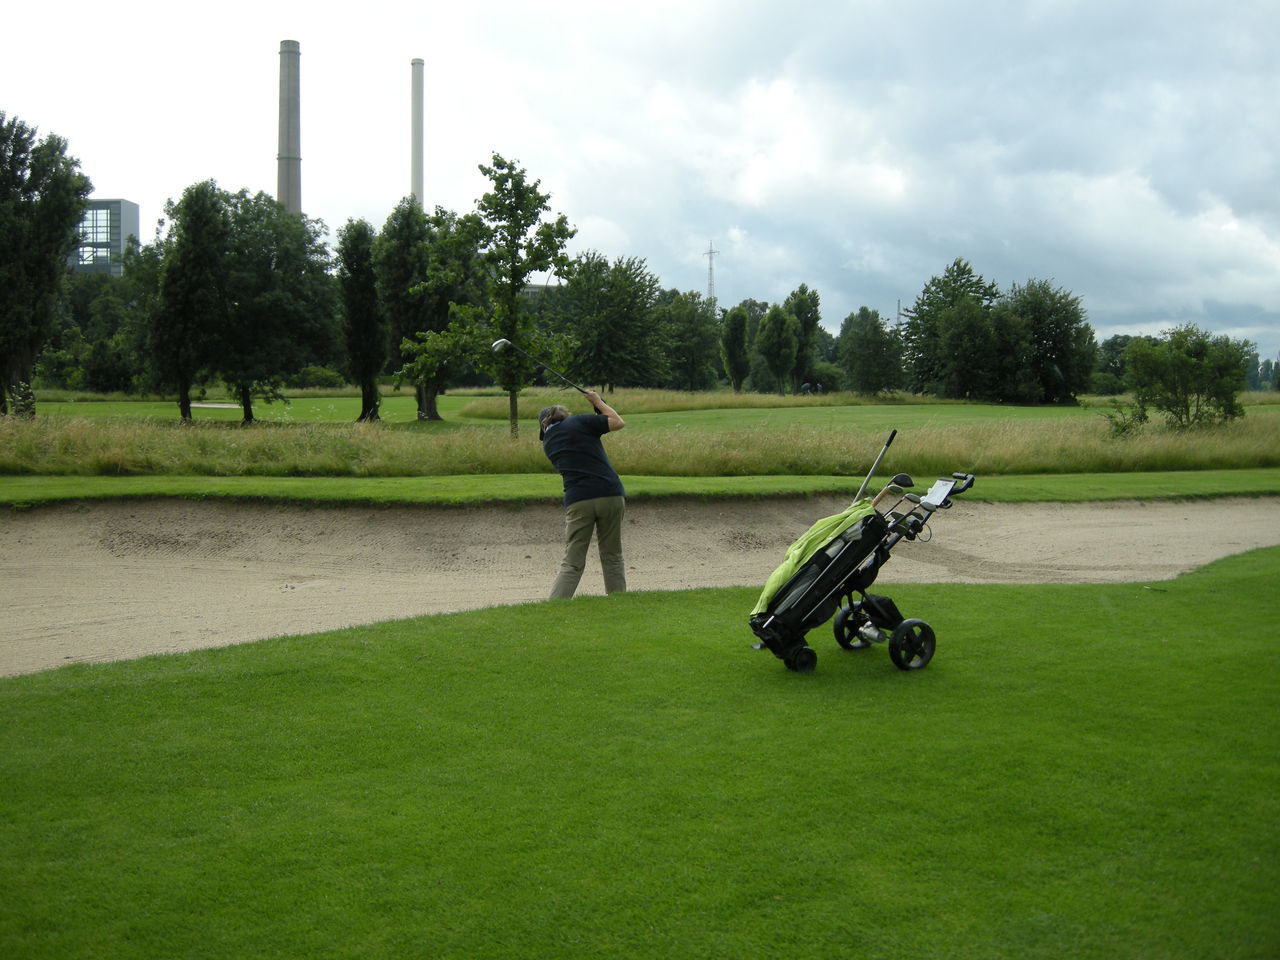 Rear View Of Person Playing Golf On Field Against Sky